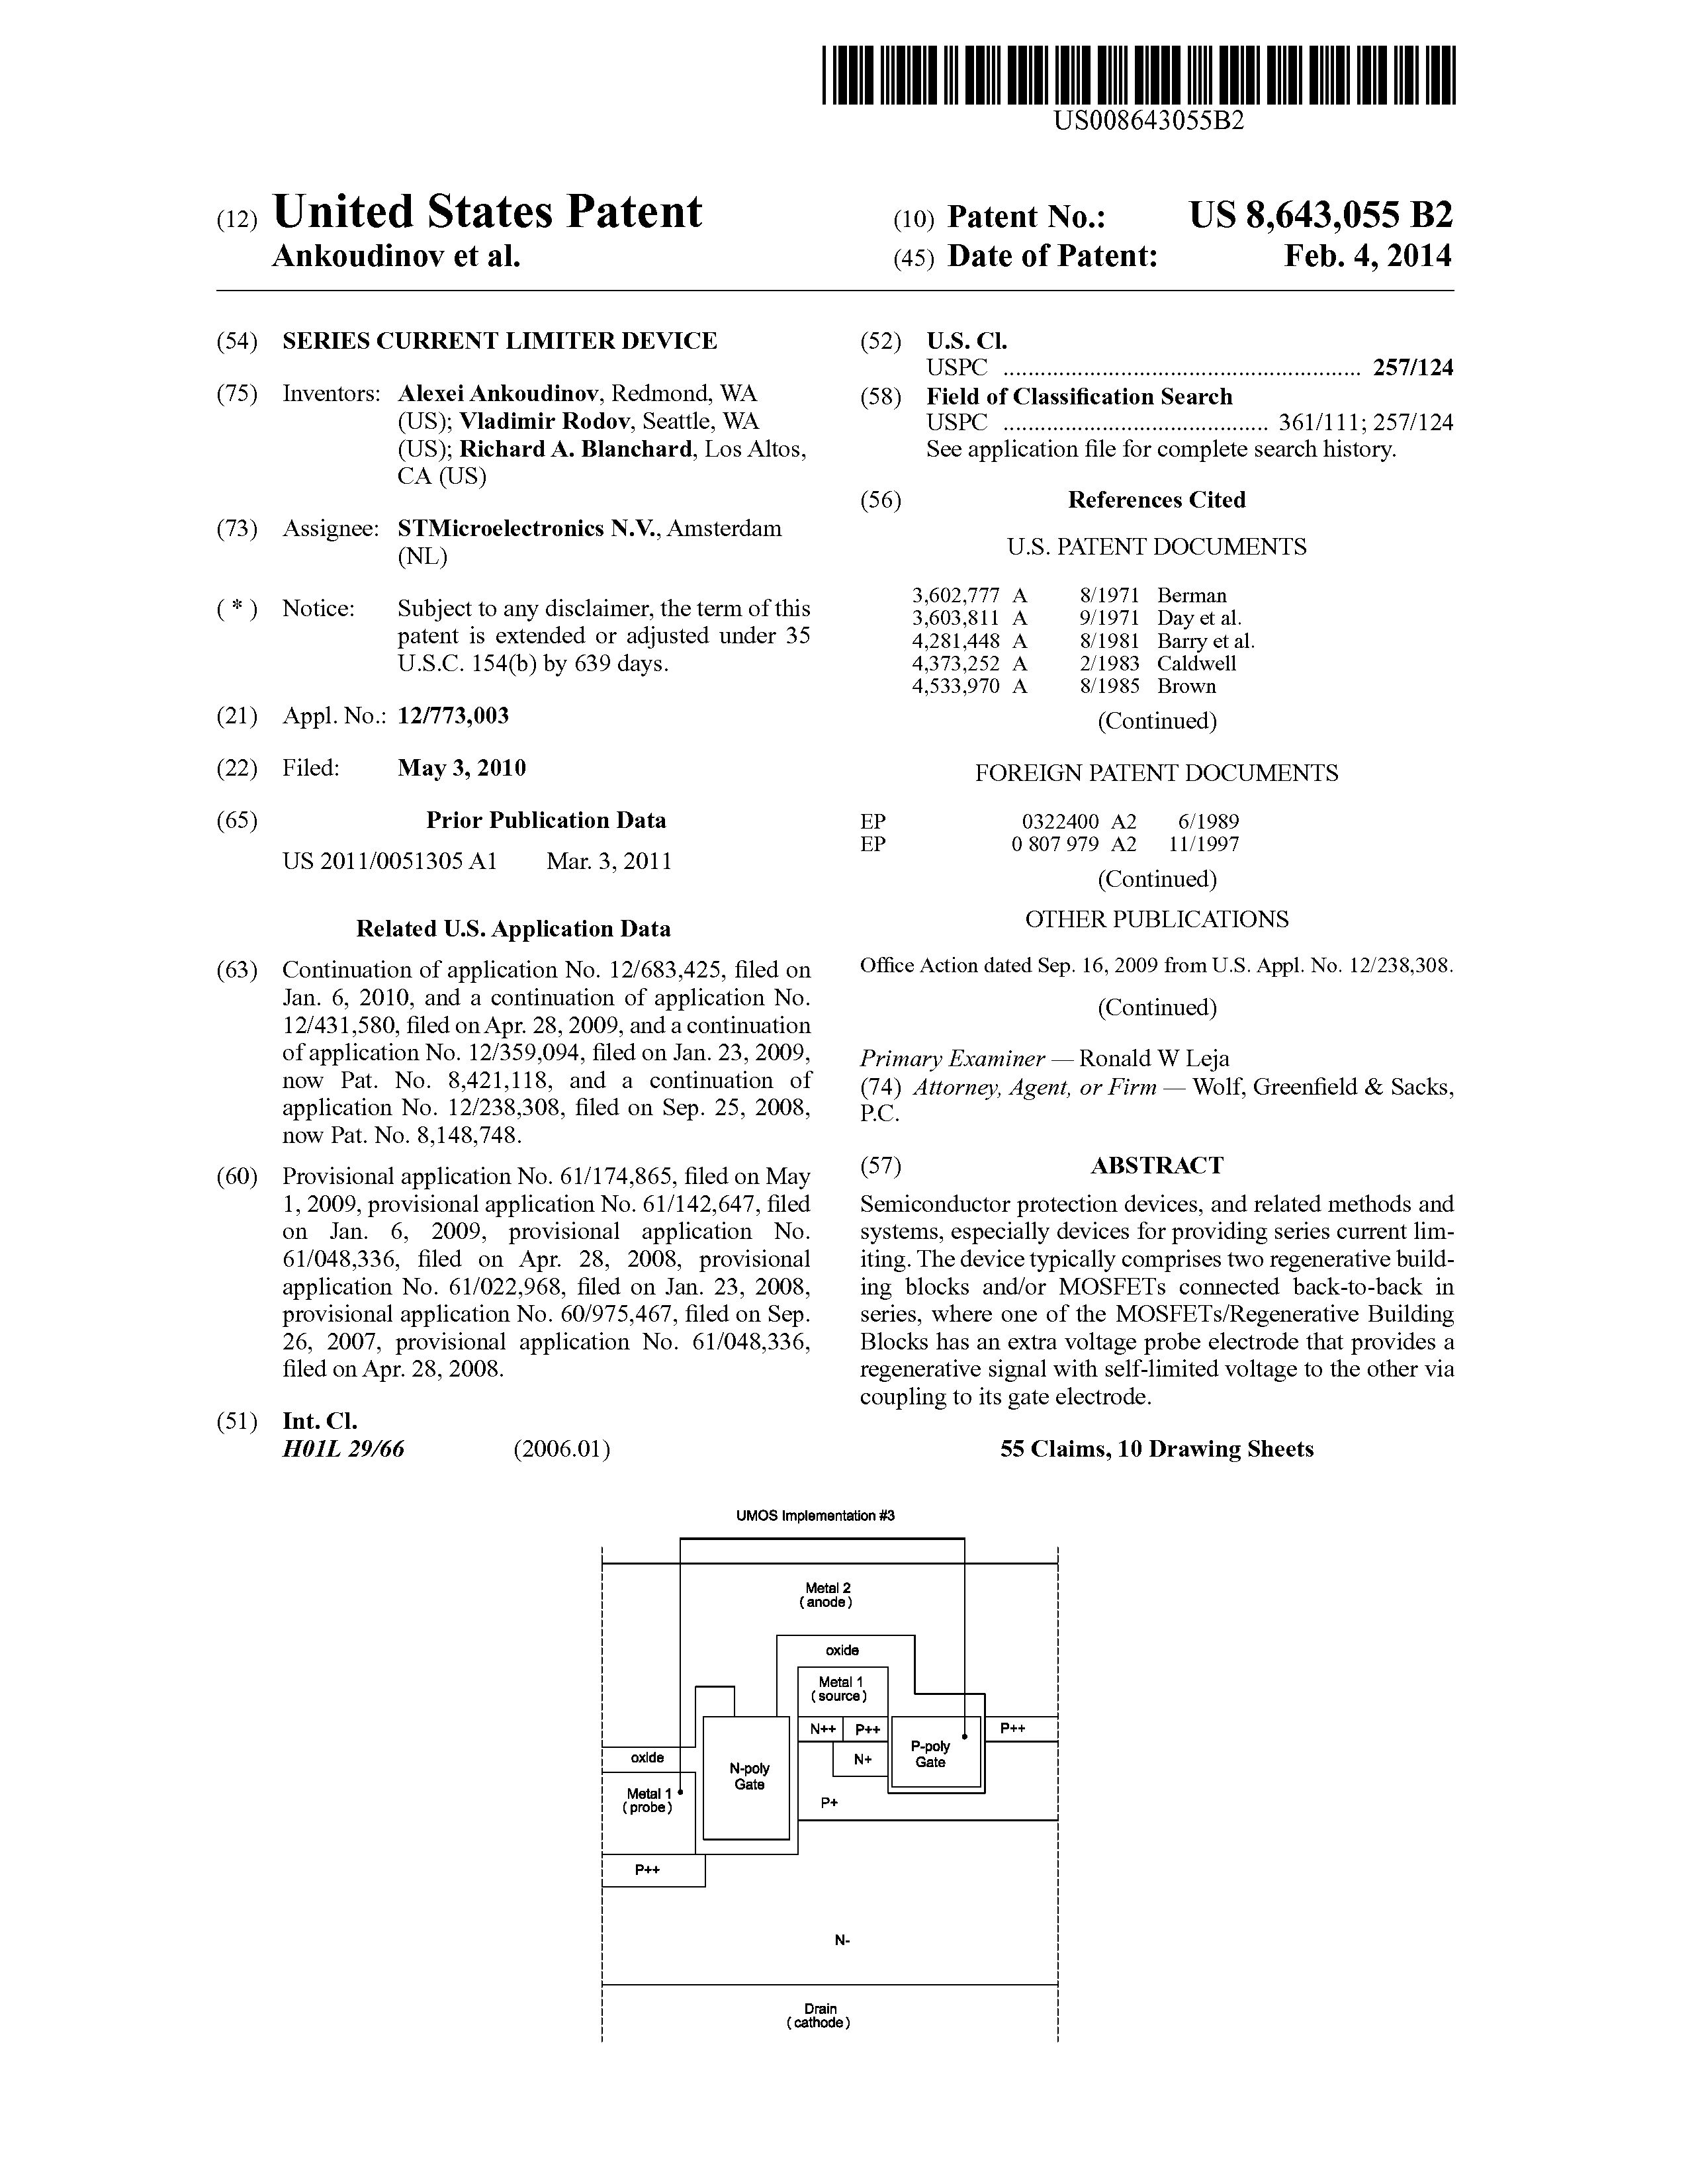 US 8643055 B2 - Series Current Limiter Device - The Lens